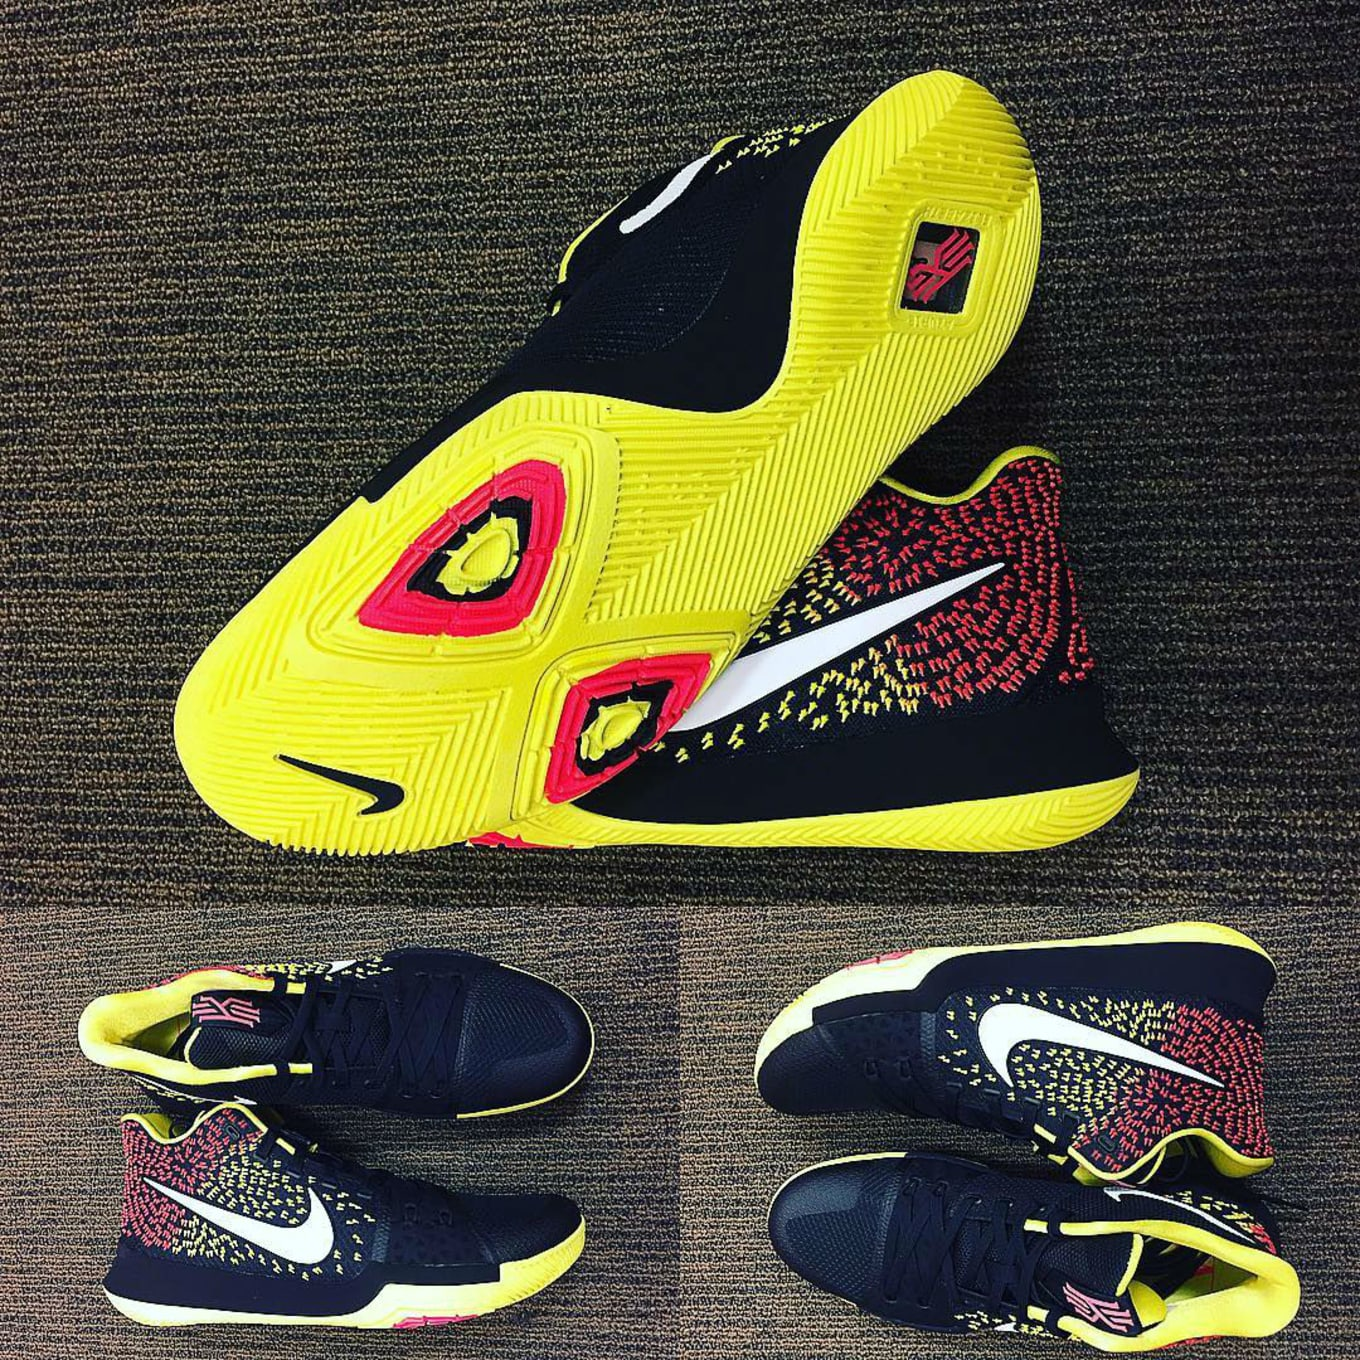 separation shoes 13a90 bab4e Cavs Assistant Shares Unreleased Nike Kyrie 3